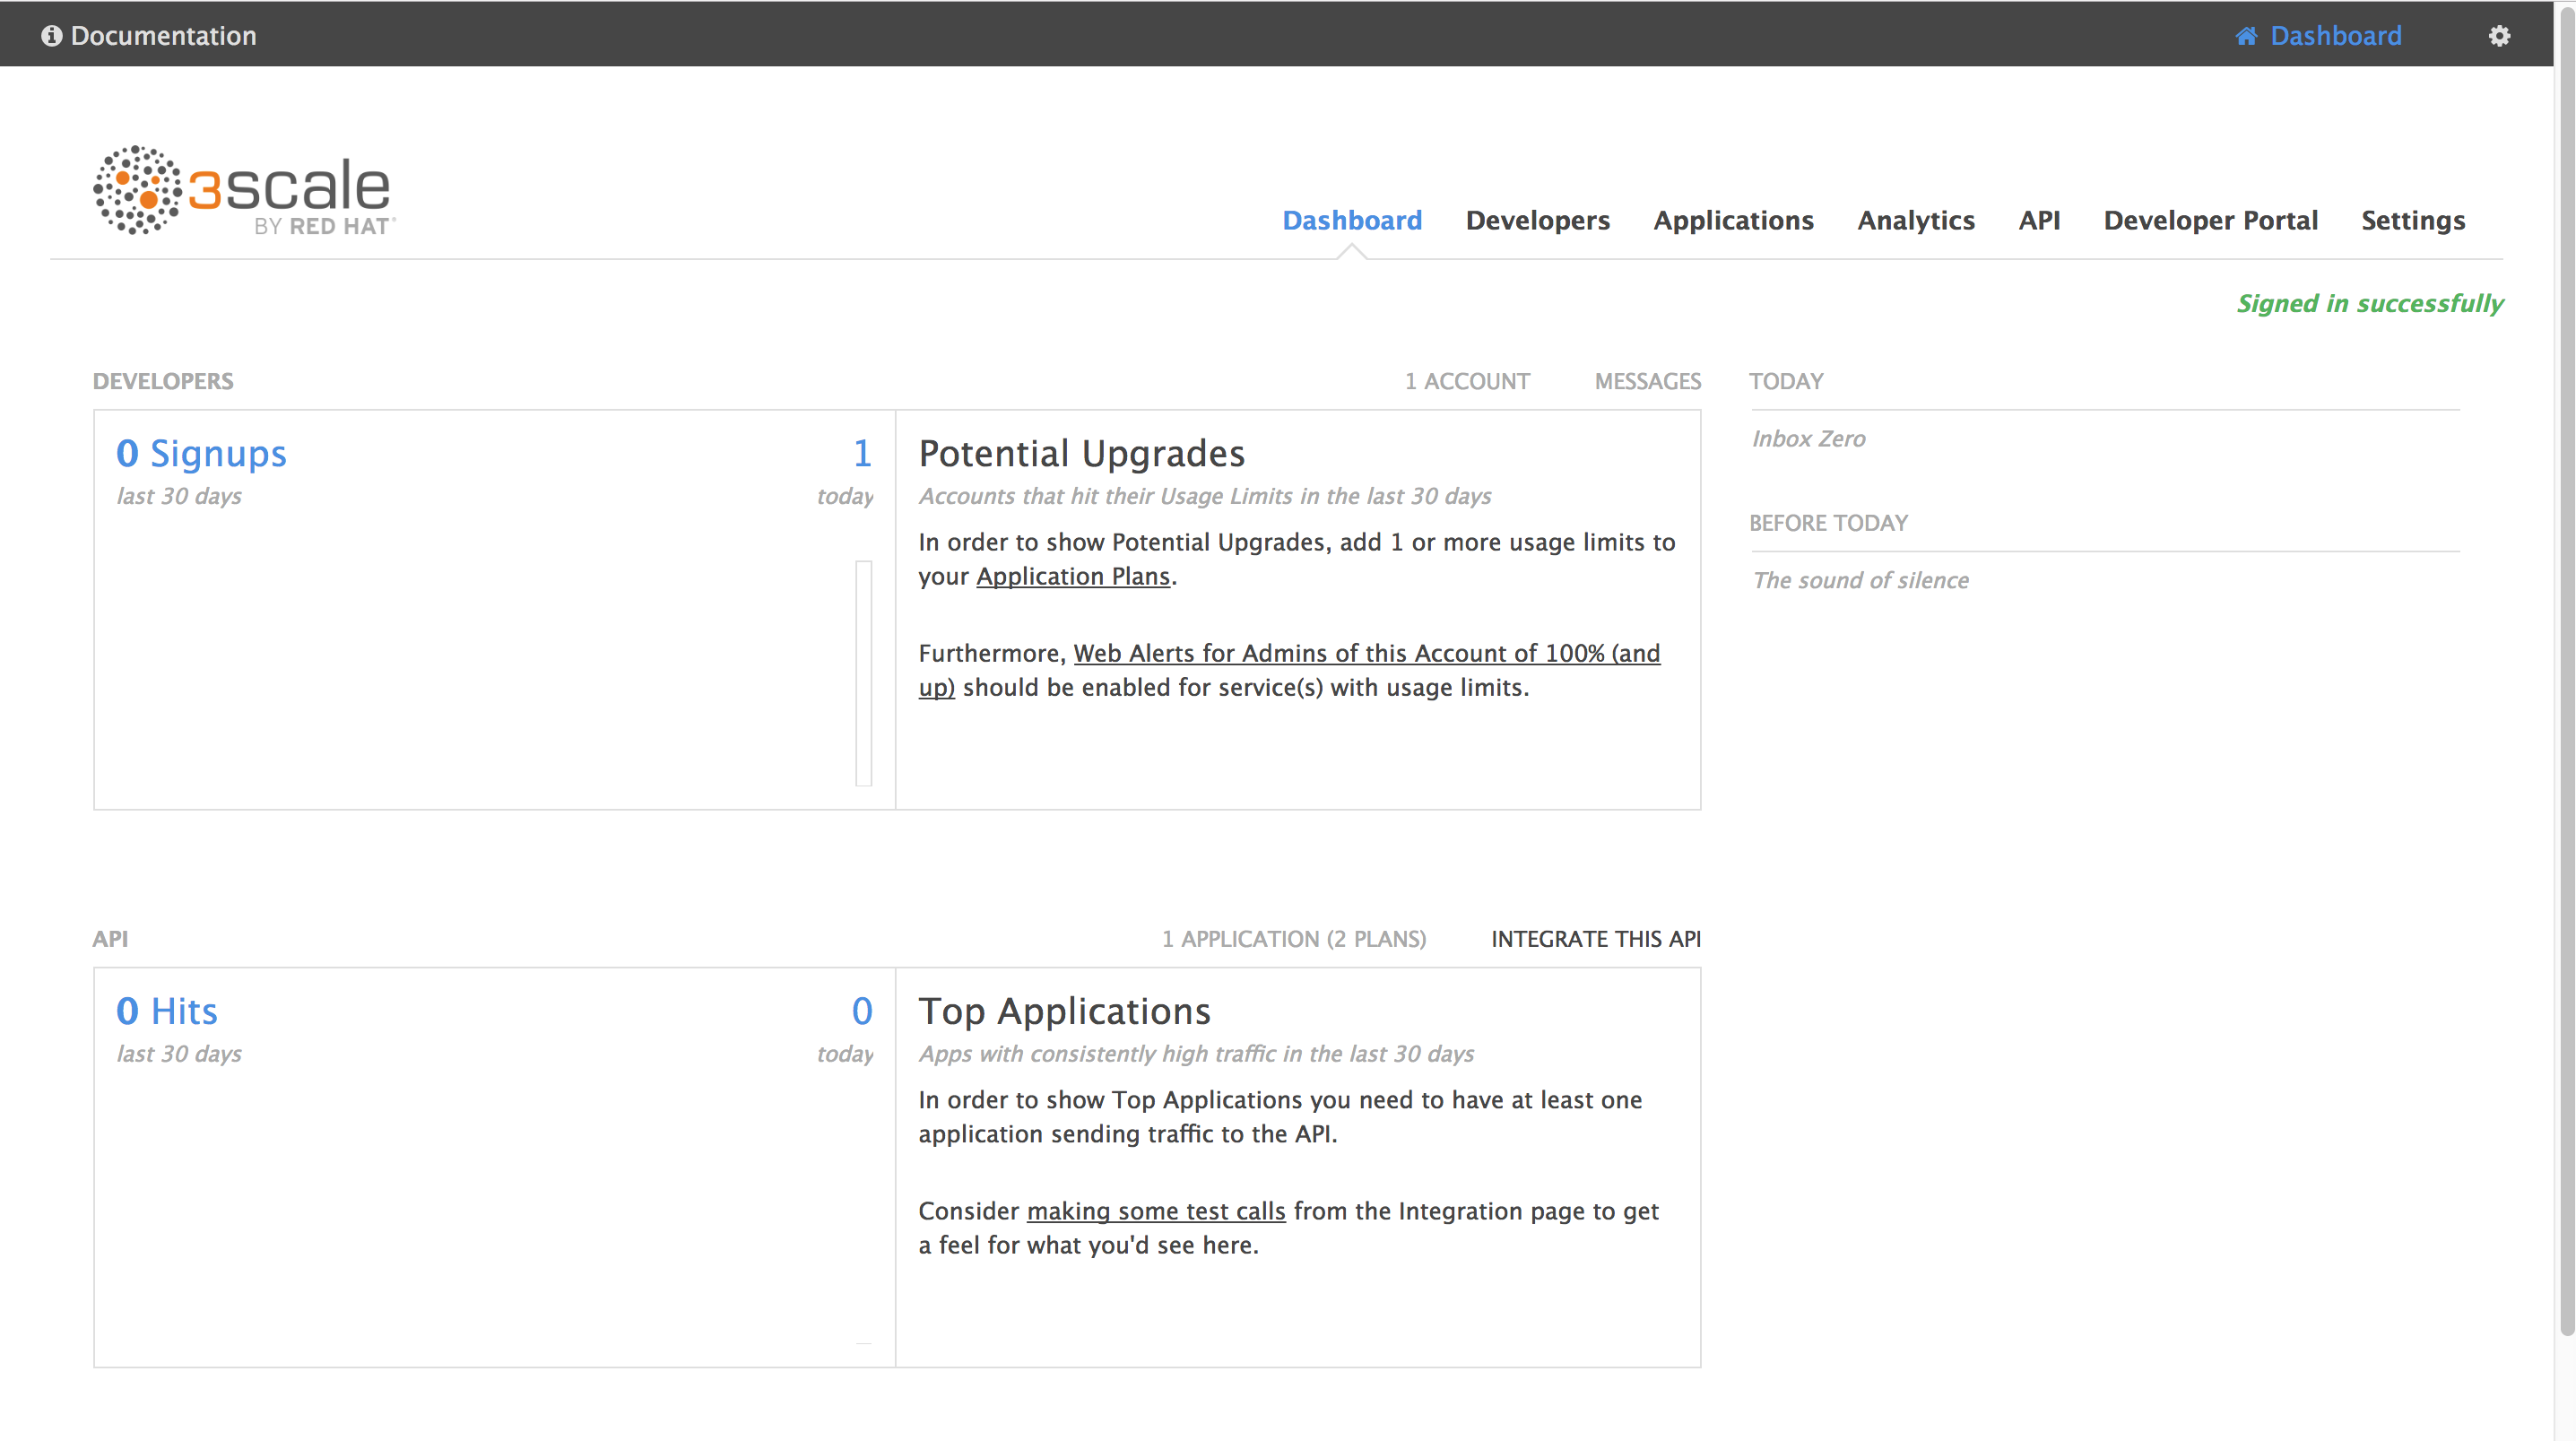 Red Hat Announces The Red Hat 3scale Api Management Platform Sd Times